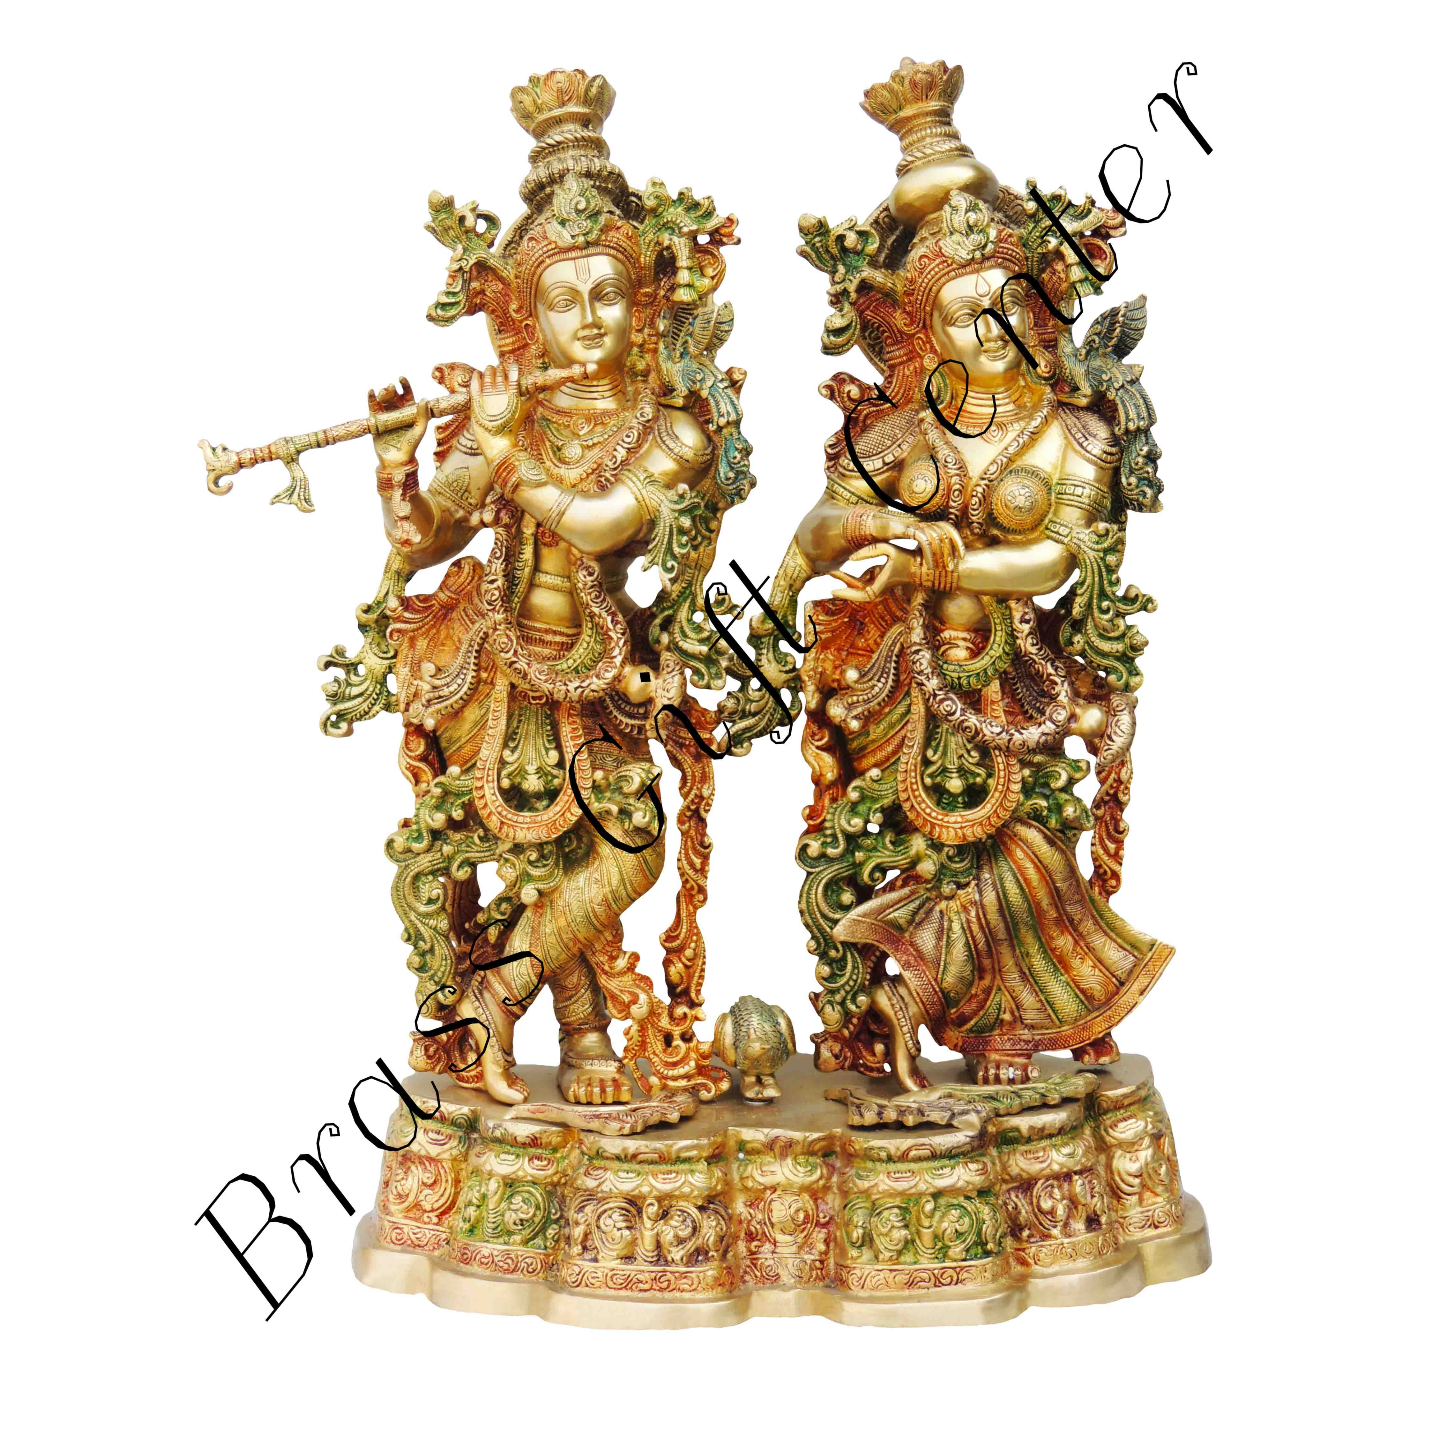 Brass Radha Krishna Staute Idol Murti in Multicolour lacquer finish- 20*12*27 Inch  (BS689 A)